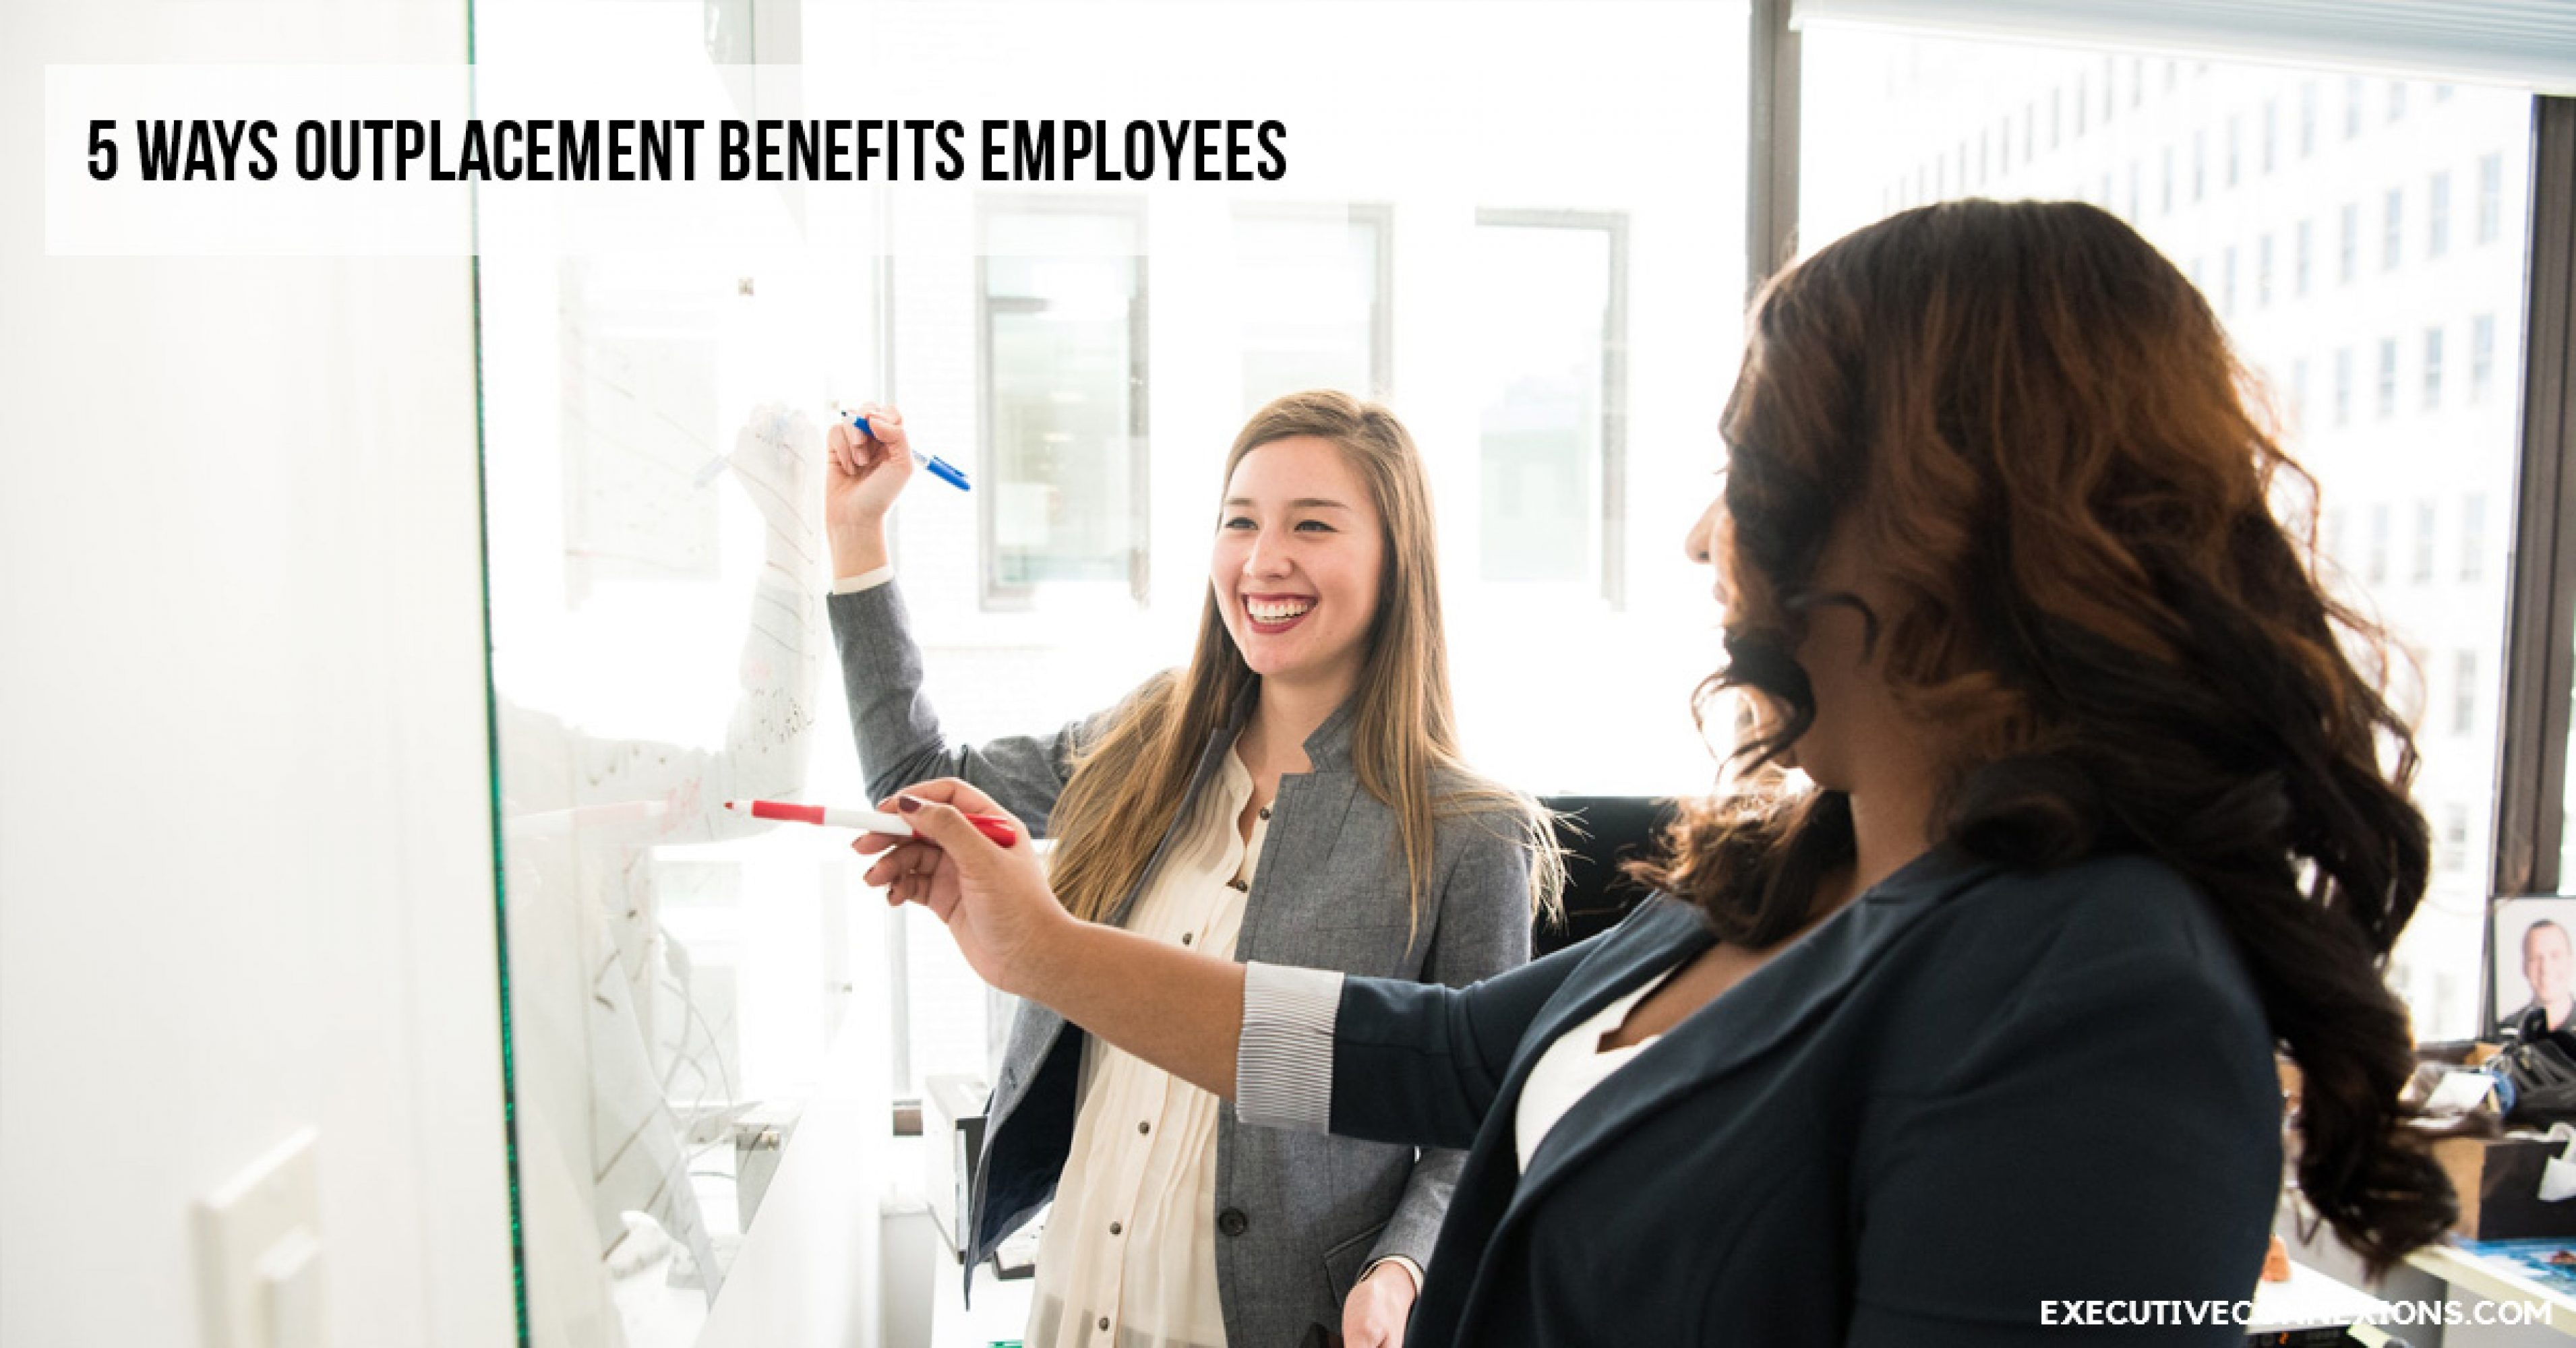 5-ways-outplacement-benefits-employees